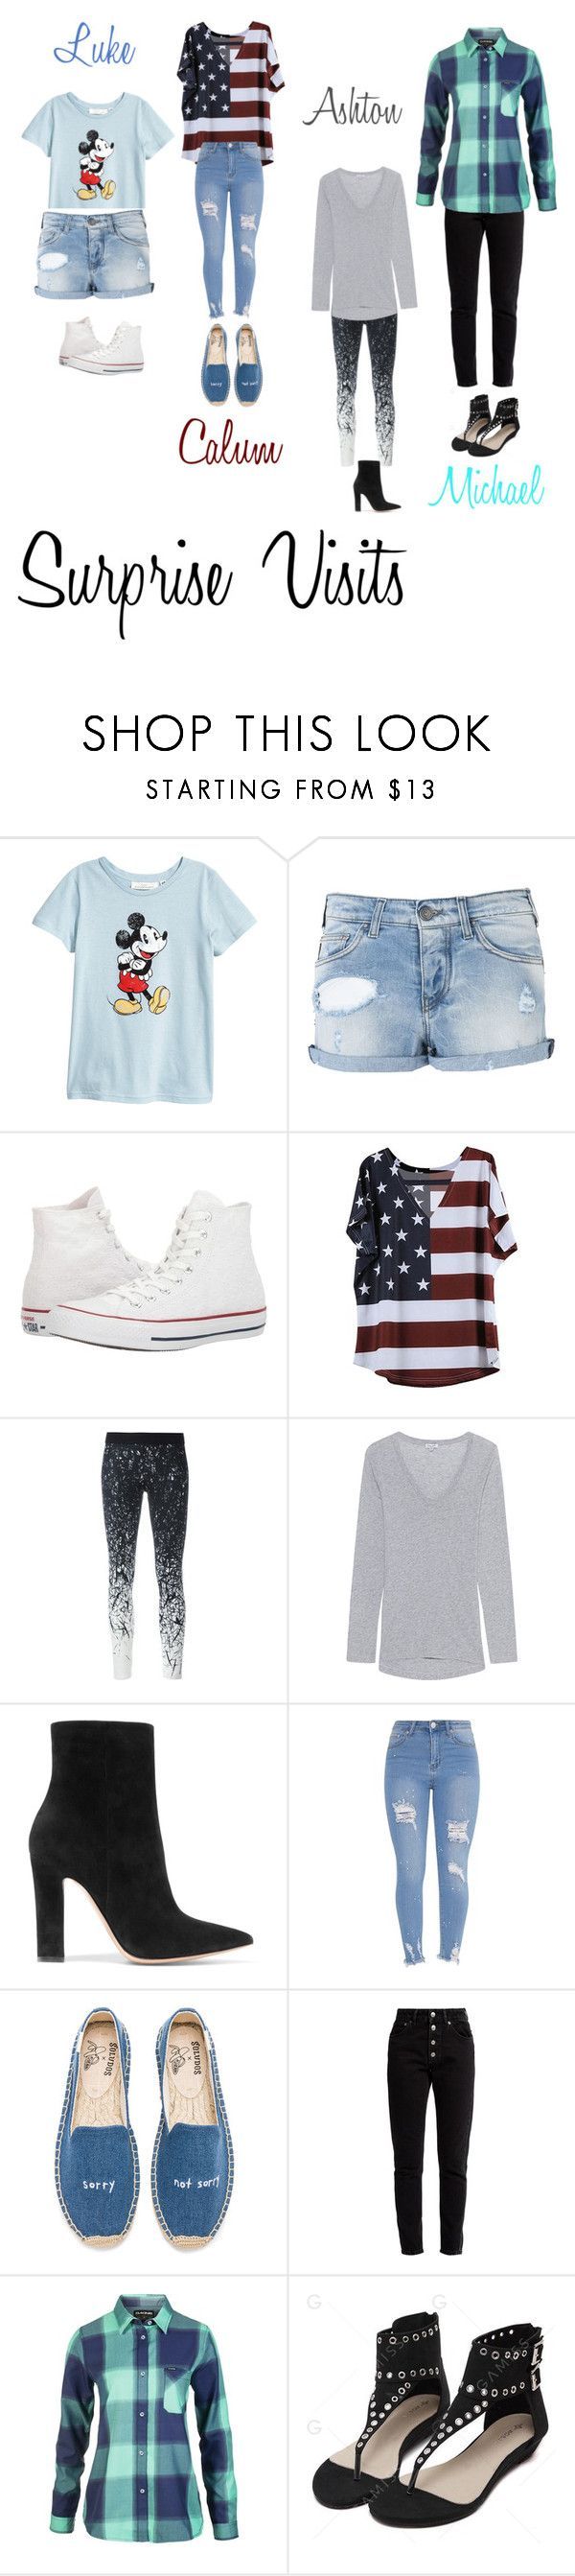 """""""5sos Preference {3}"""" by saragruver76 ❤ liked on Polyvore featuring Armani Jeans, Converse, Reebok, Splendid, Gianvito Rossi, Soludos, Balenciaga and Dakine"""